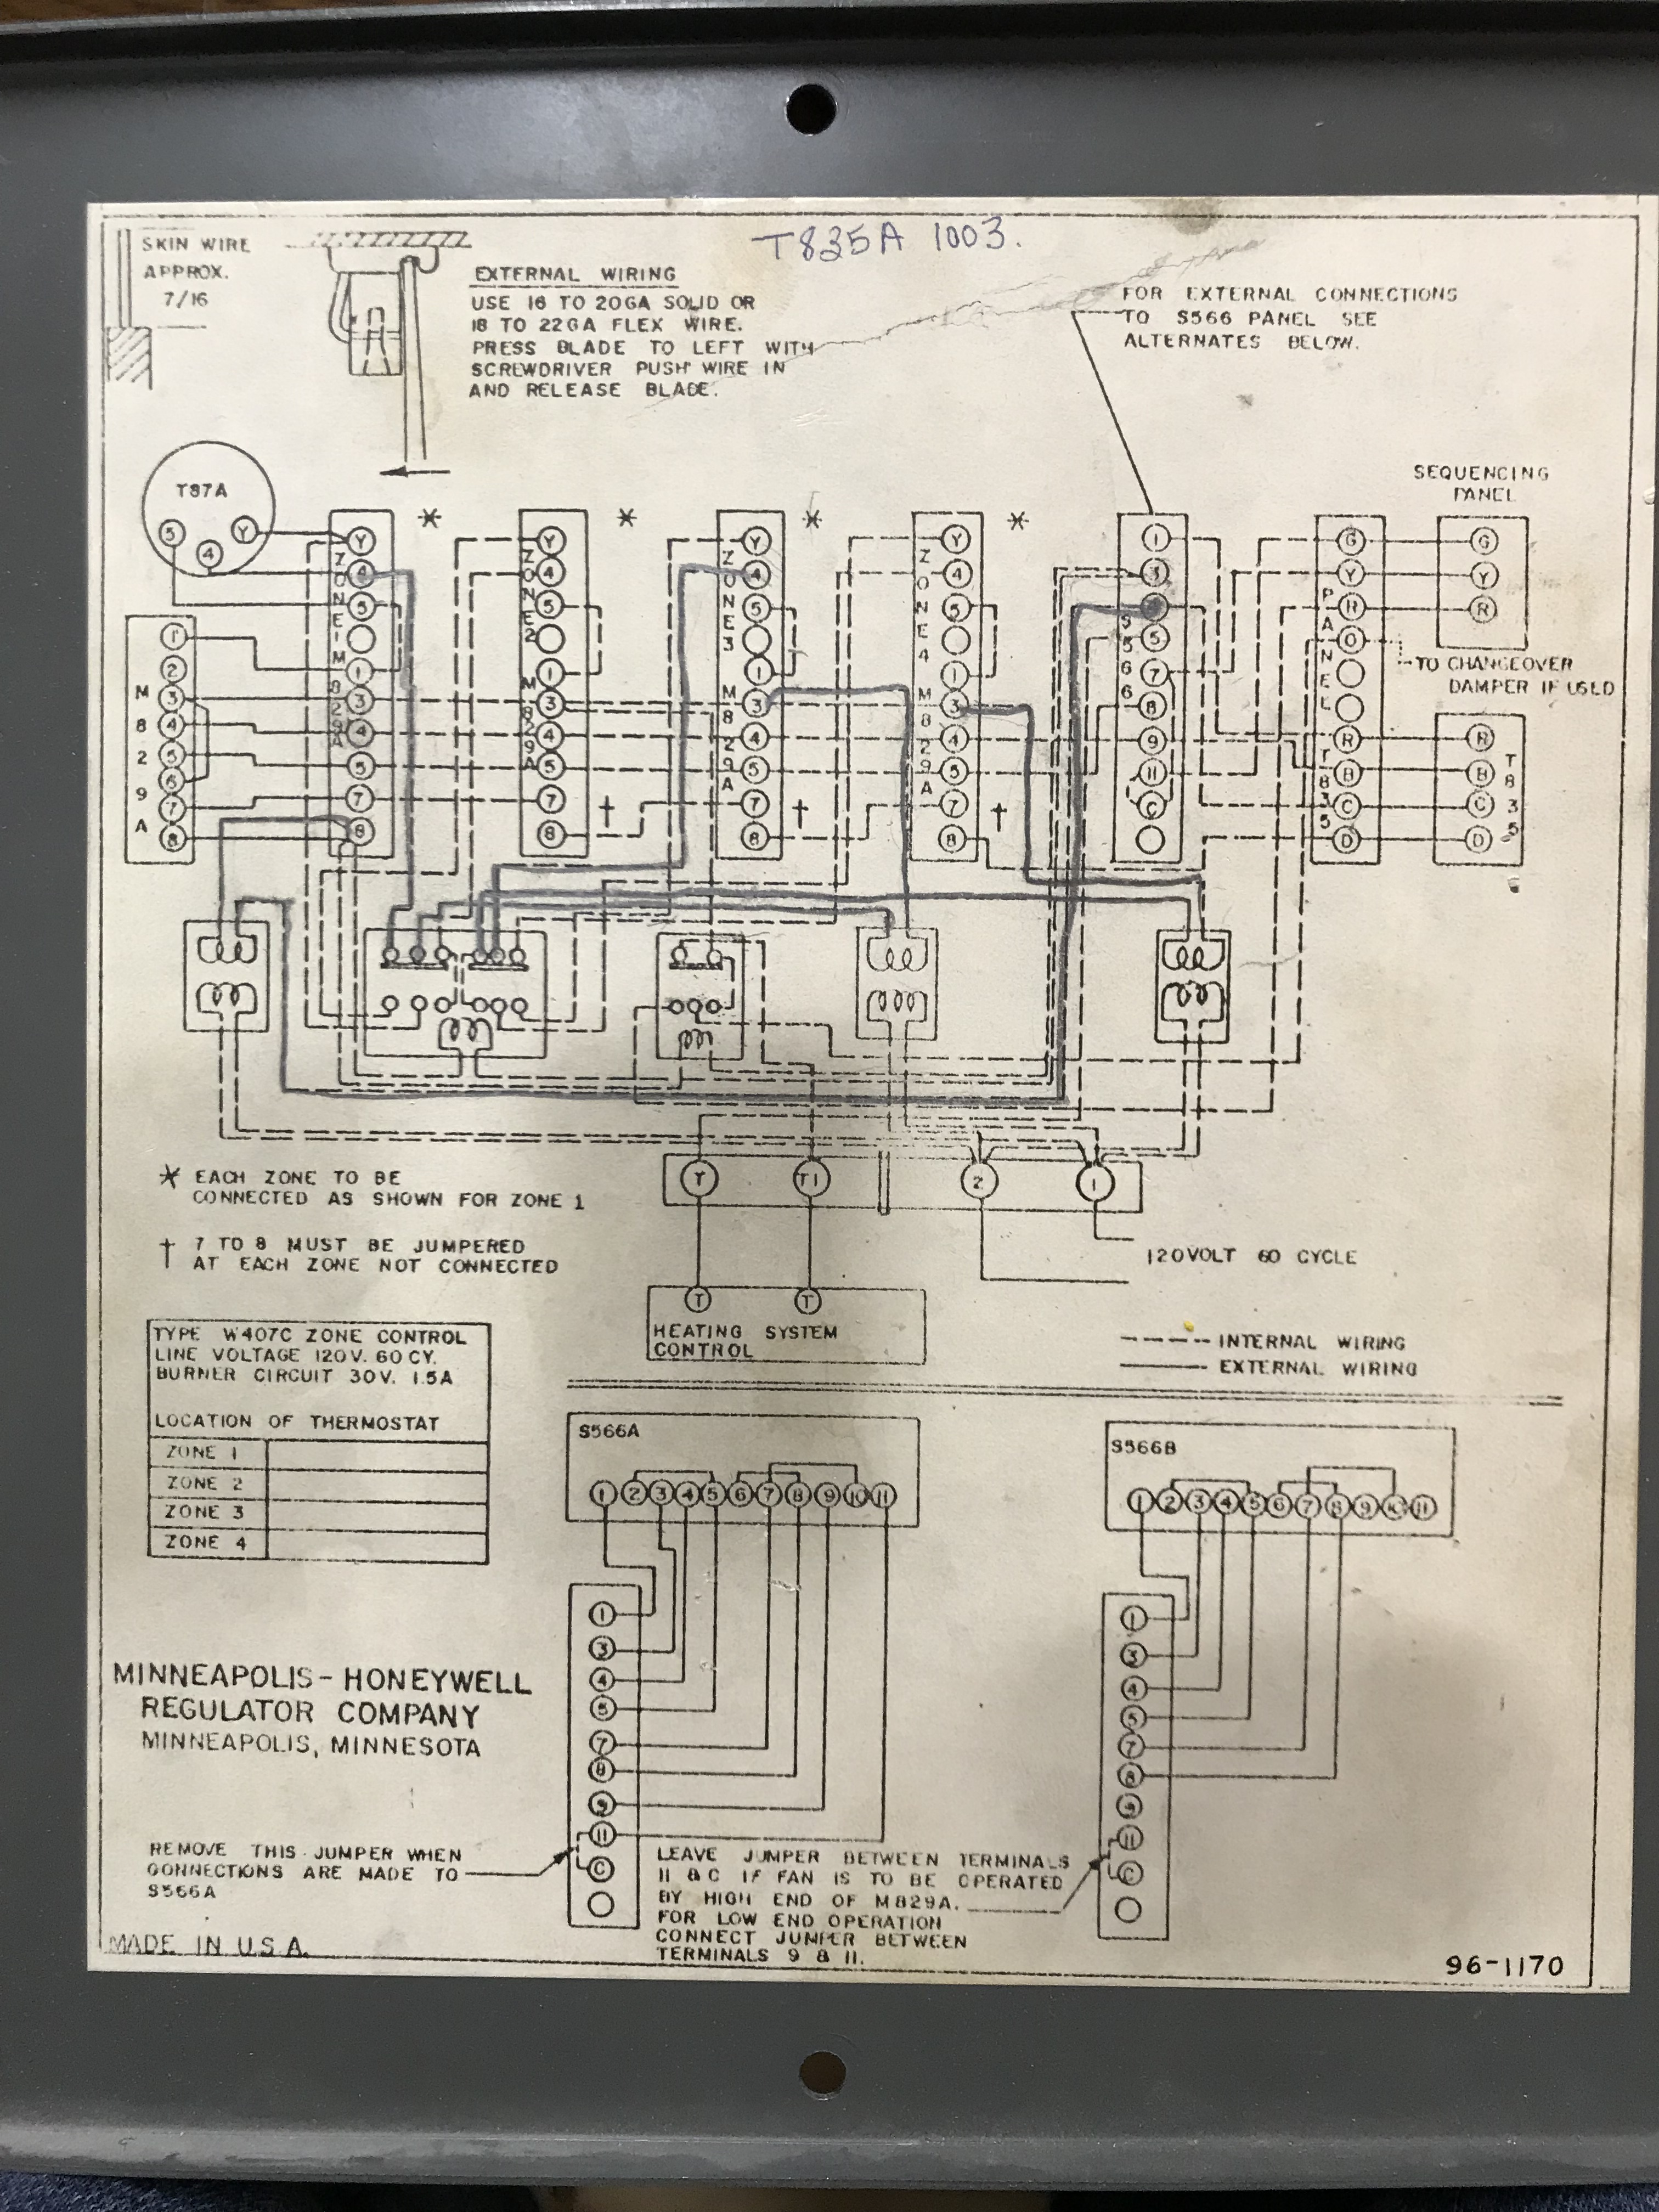 I Have A Honeywell 4 Zone Control System In Home From 1963 Do You Board Wiring Diagram Shoneywe